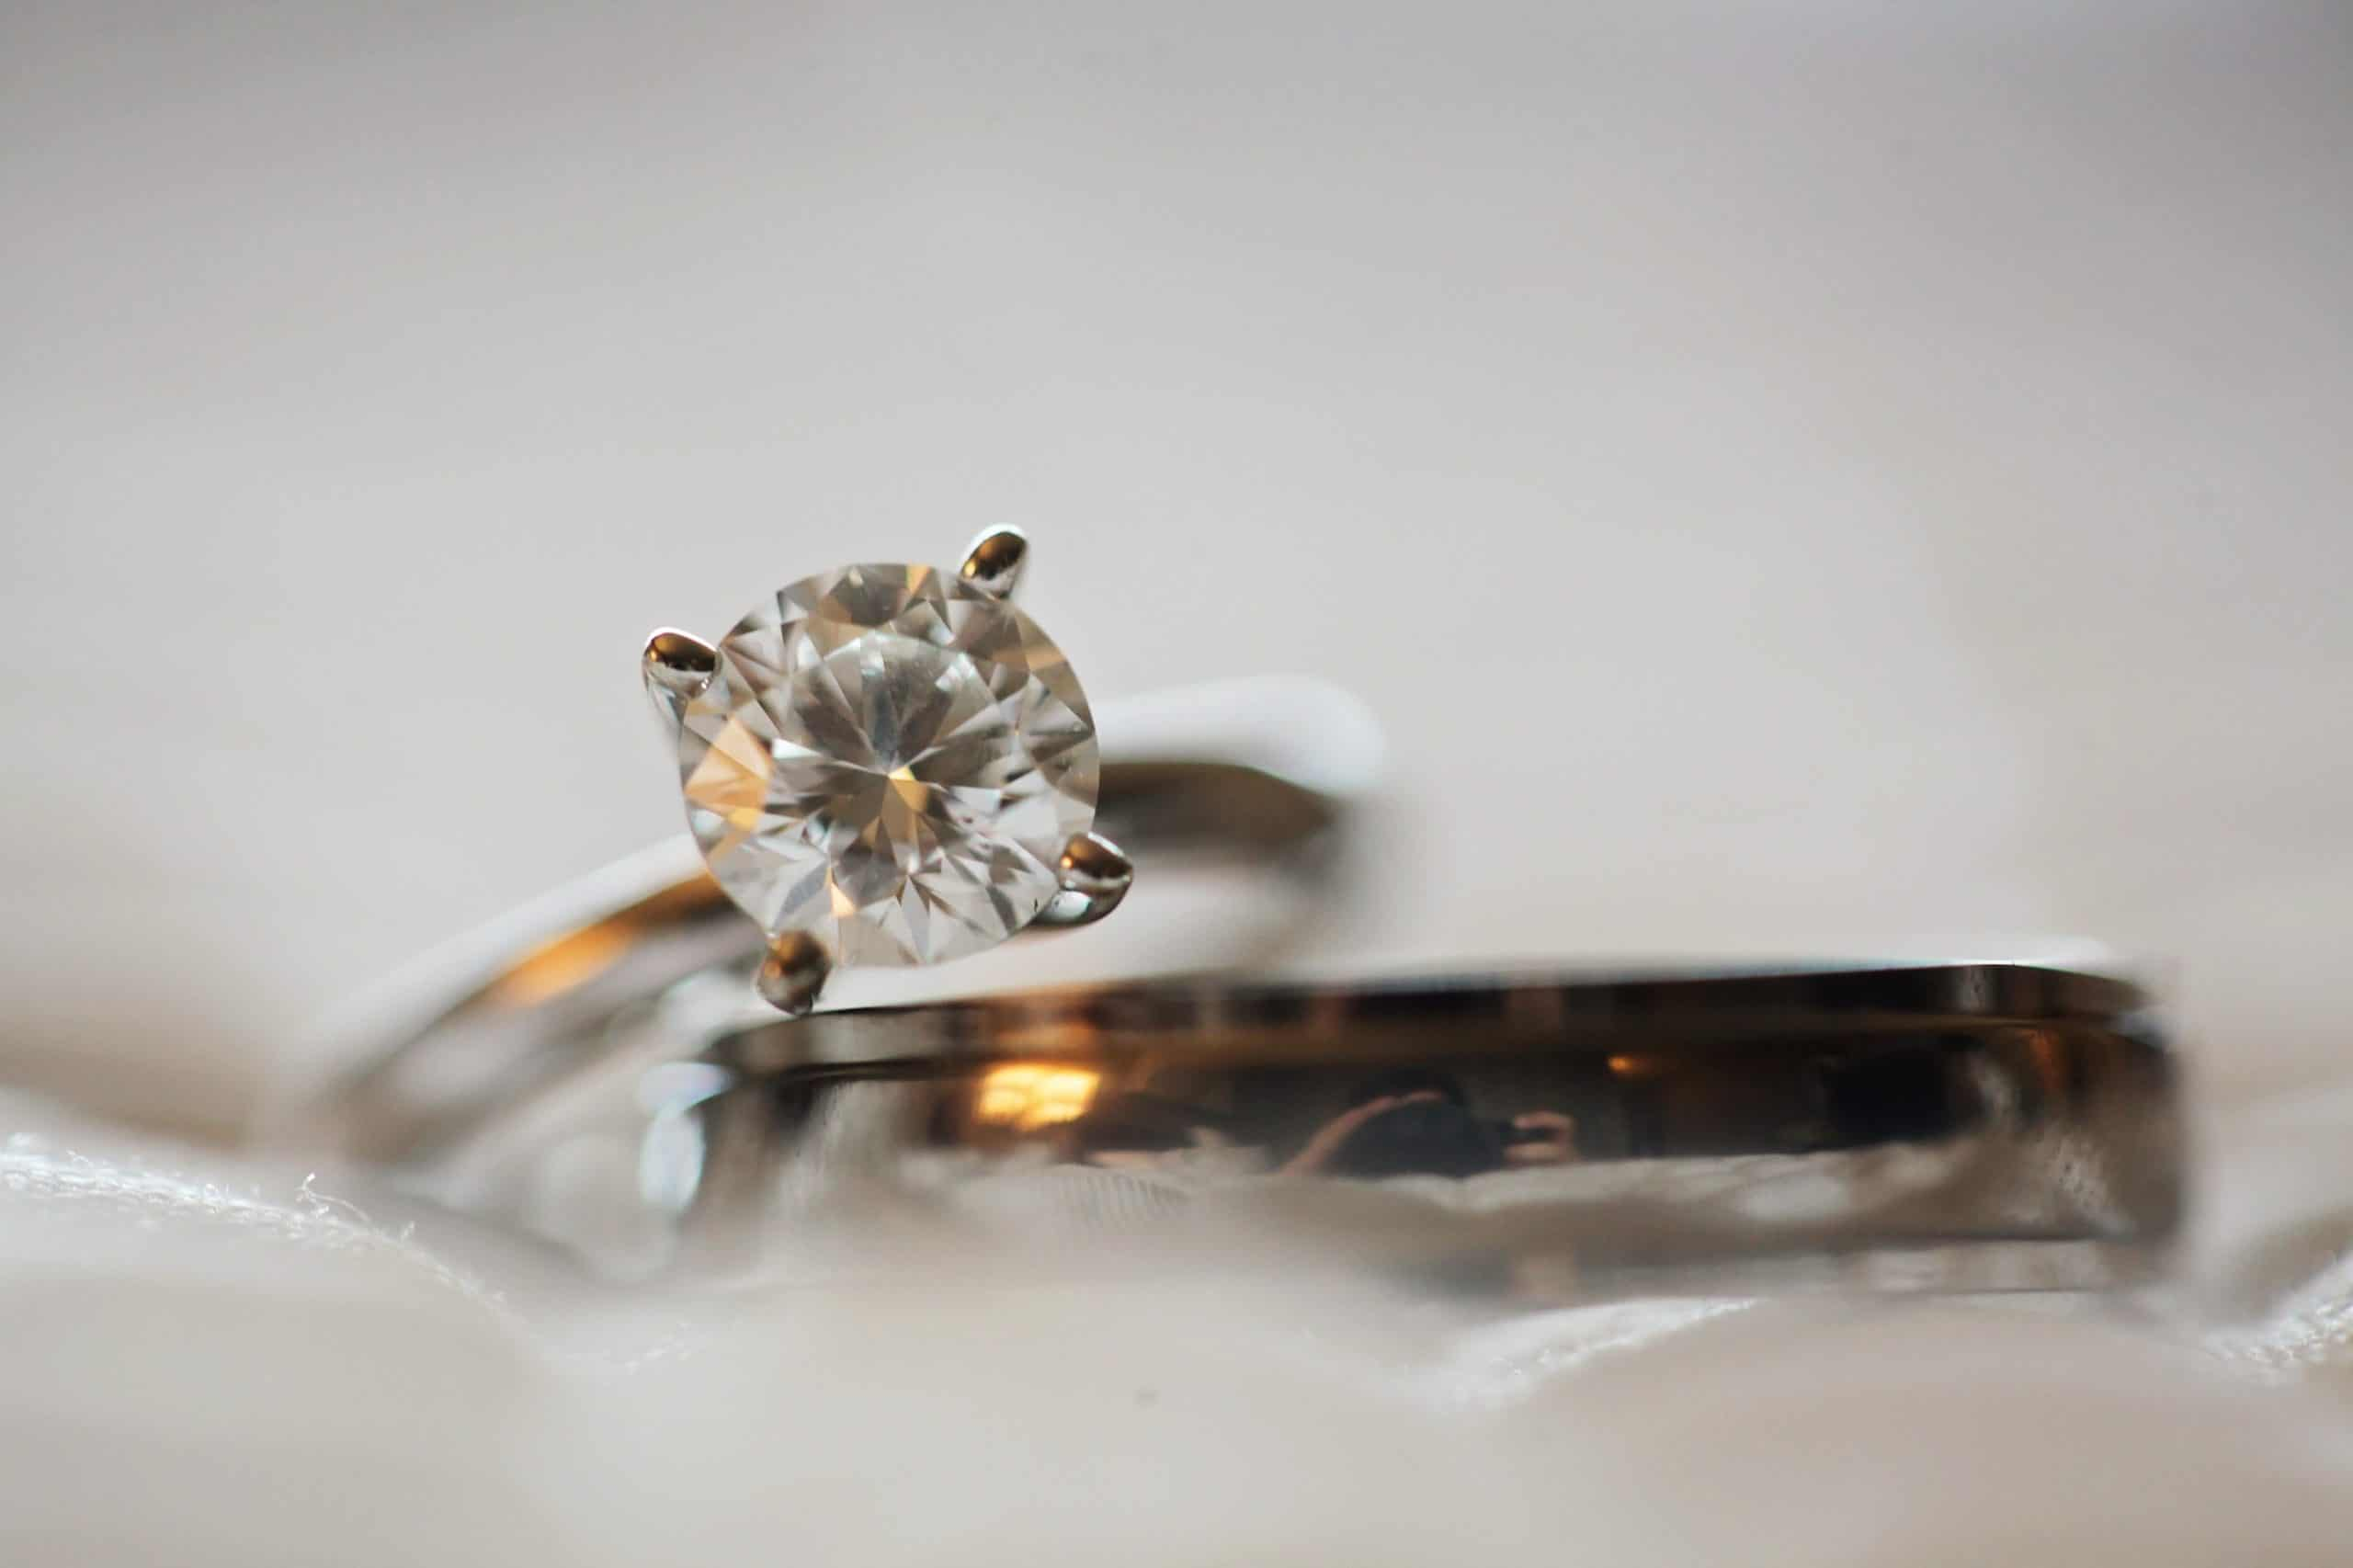 Top 5 Best Places To Buy An Engagement Ring In 2020 The Diamond Pro